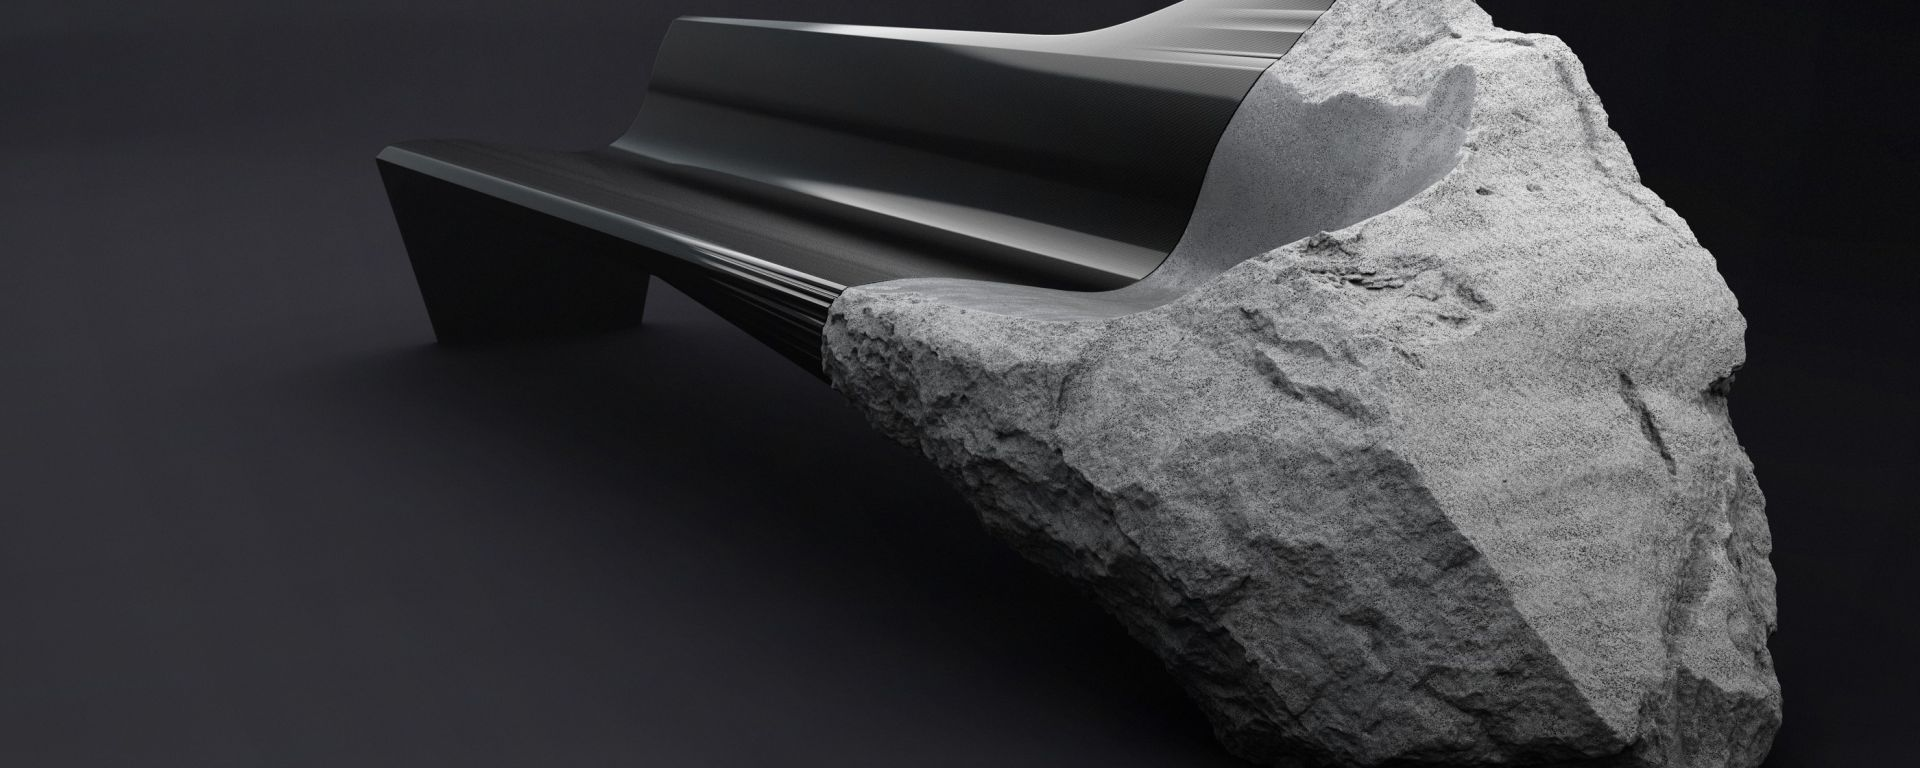 Sofà ONYX by Peugeot Design Lab